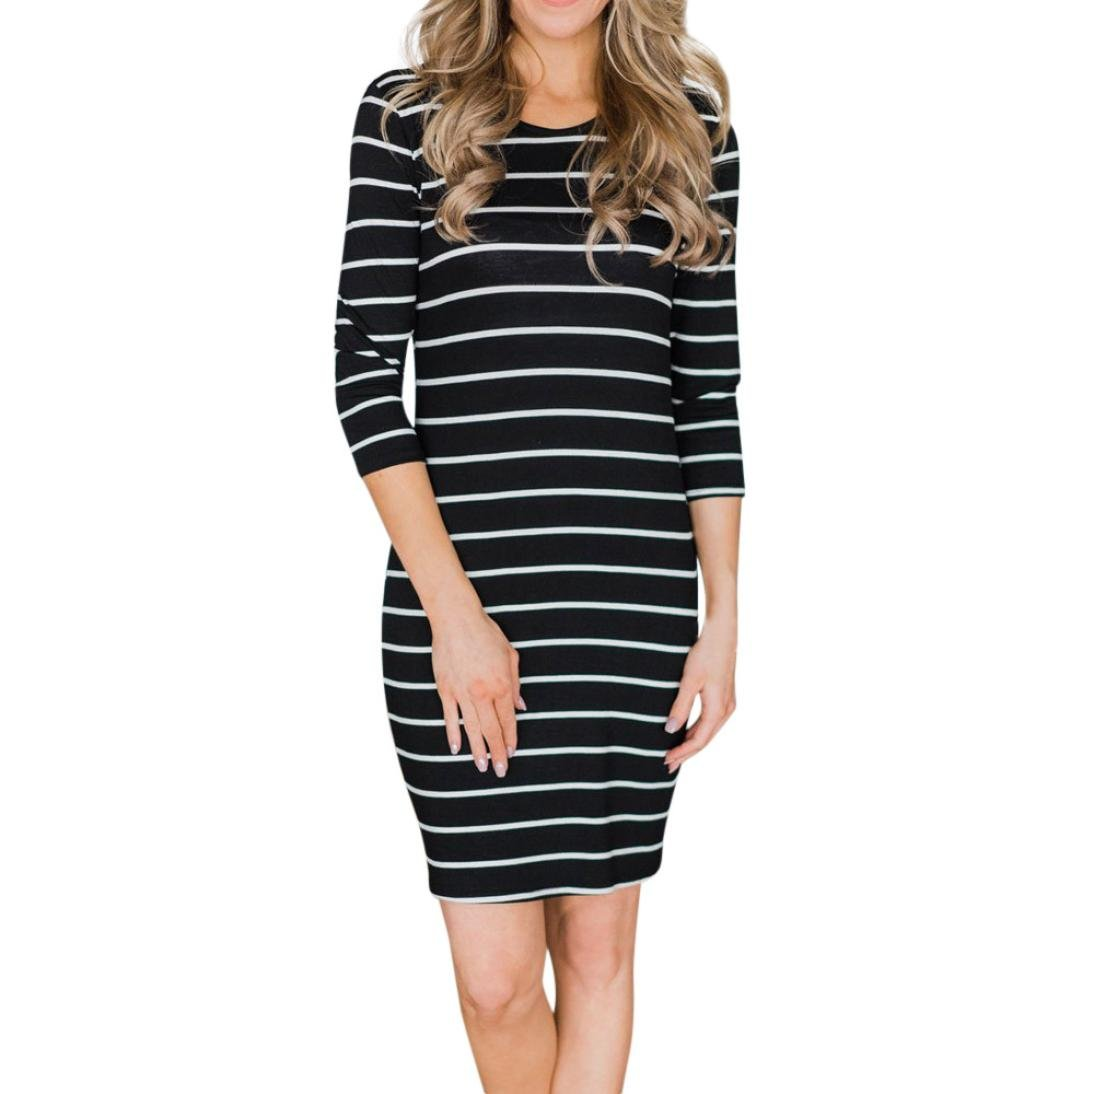 Spbamboo Women Ladies Casual Striped Hot Round Neck Half Sleeve Dress Mini Dress by Spbamboo